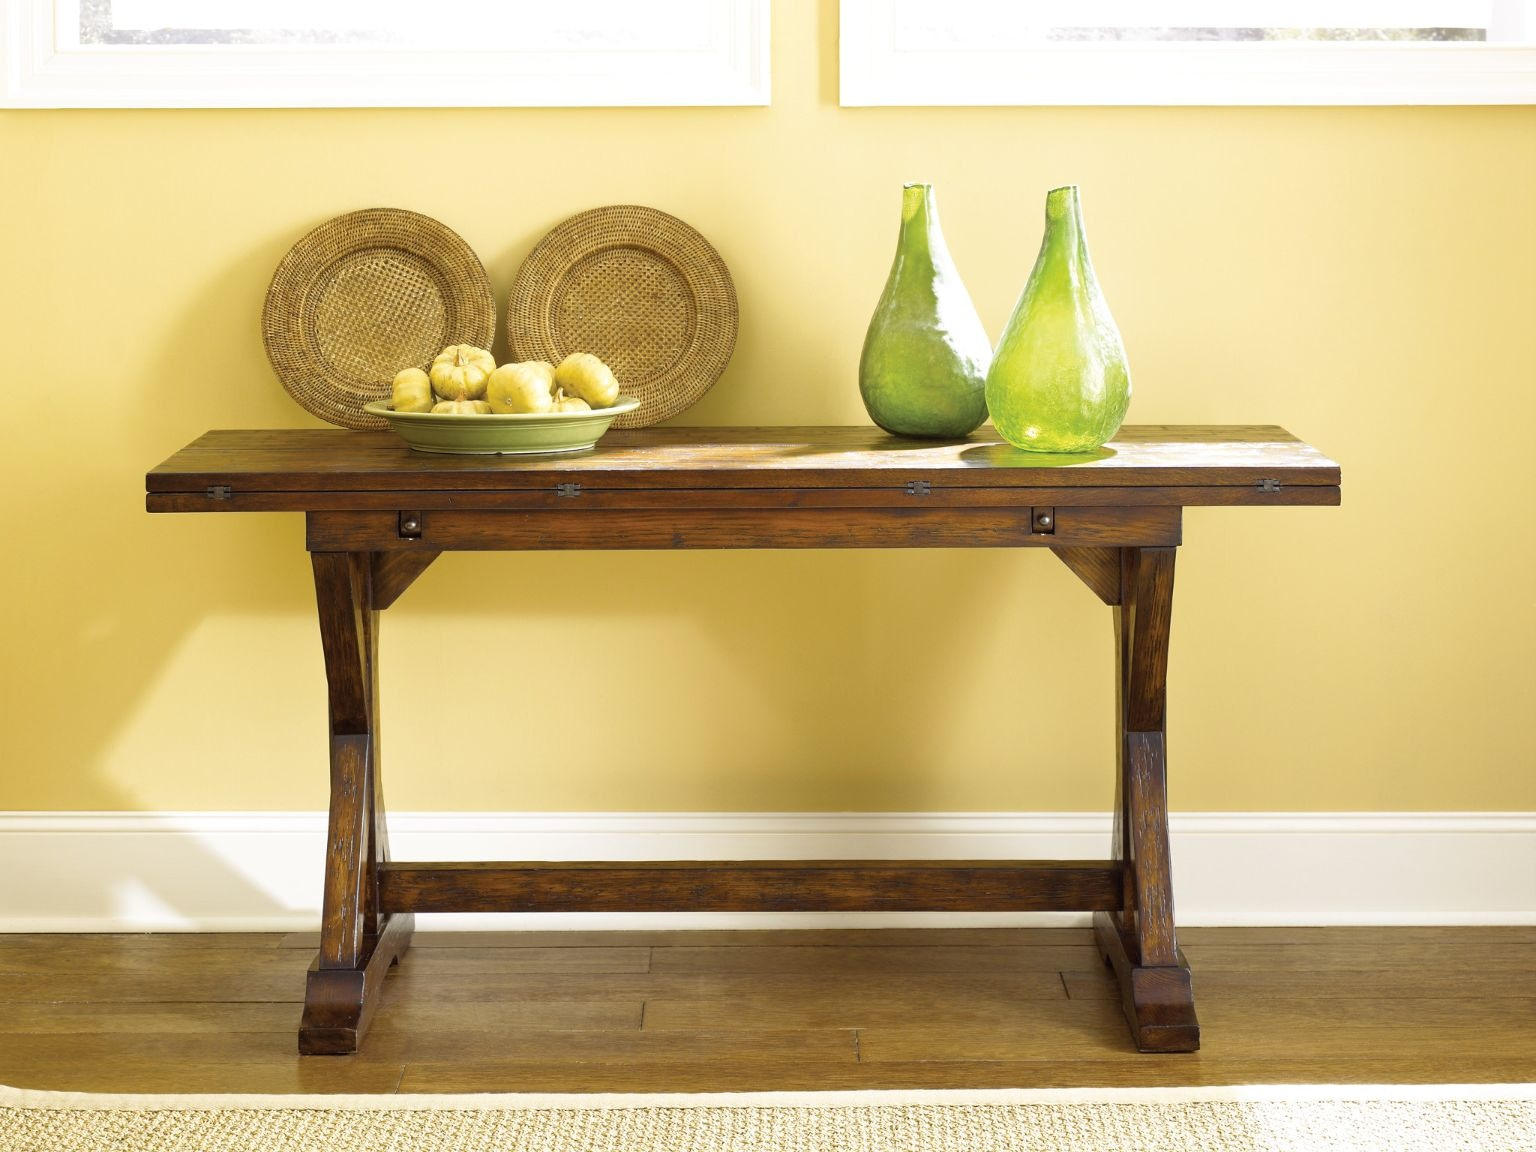 Fantastic Hammary Flip Console Table From Walter Smi Furniture Flip Console Table Walter E Smi Outlet Hours Walter E Smi Outlet Store Bloomingdale houzz-02 Walter E Smithe Outlet